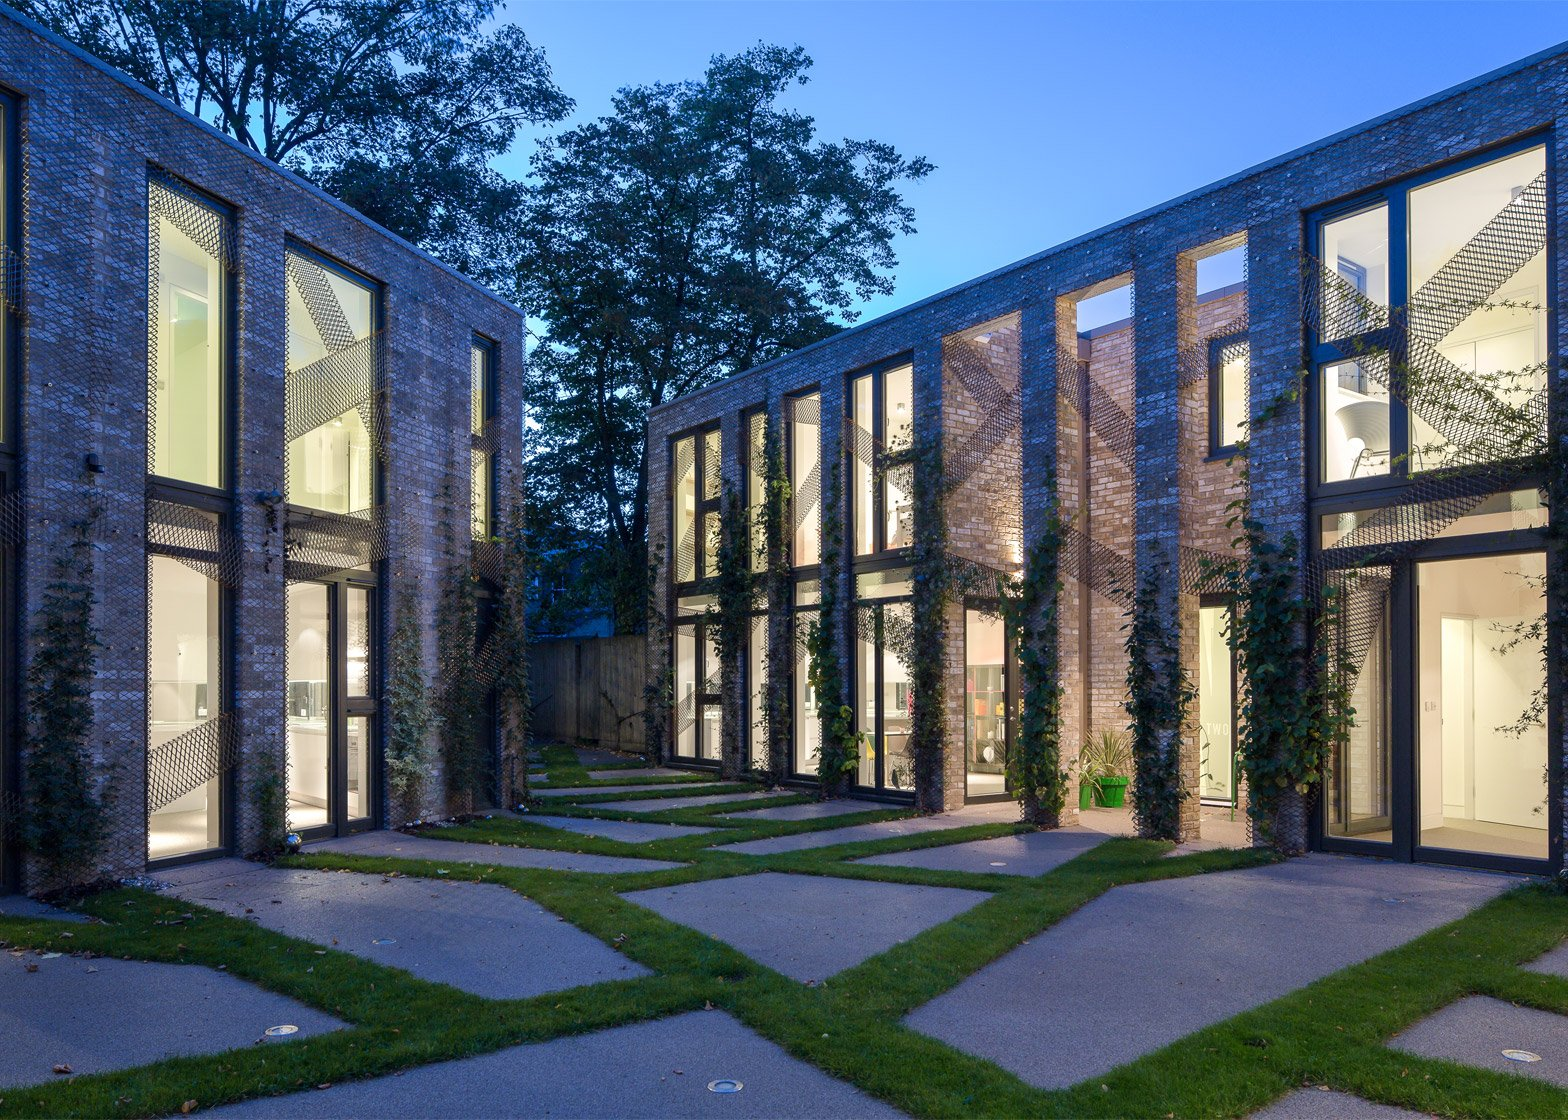 Forest Mews by Robert and Jessica Barker in Lewisham, London